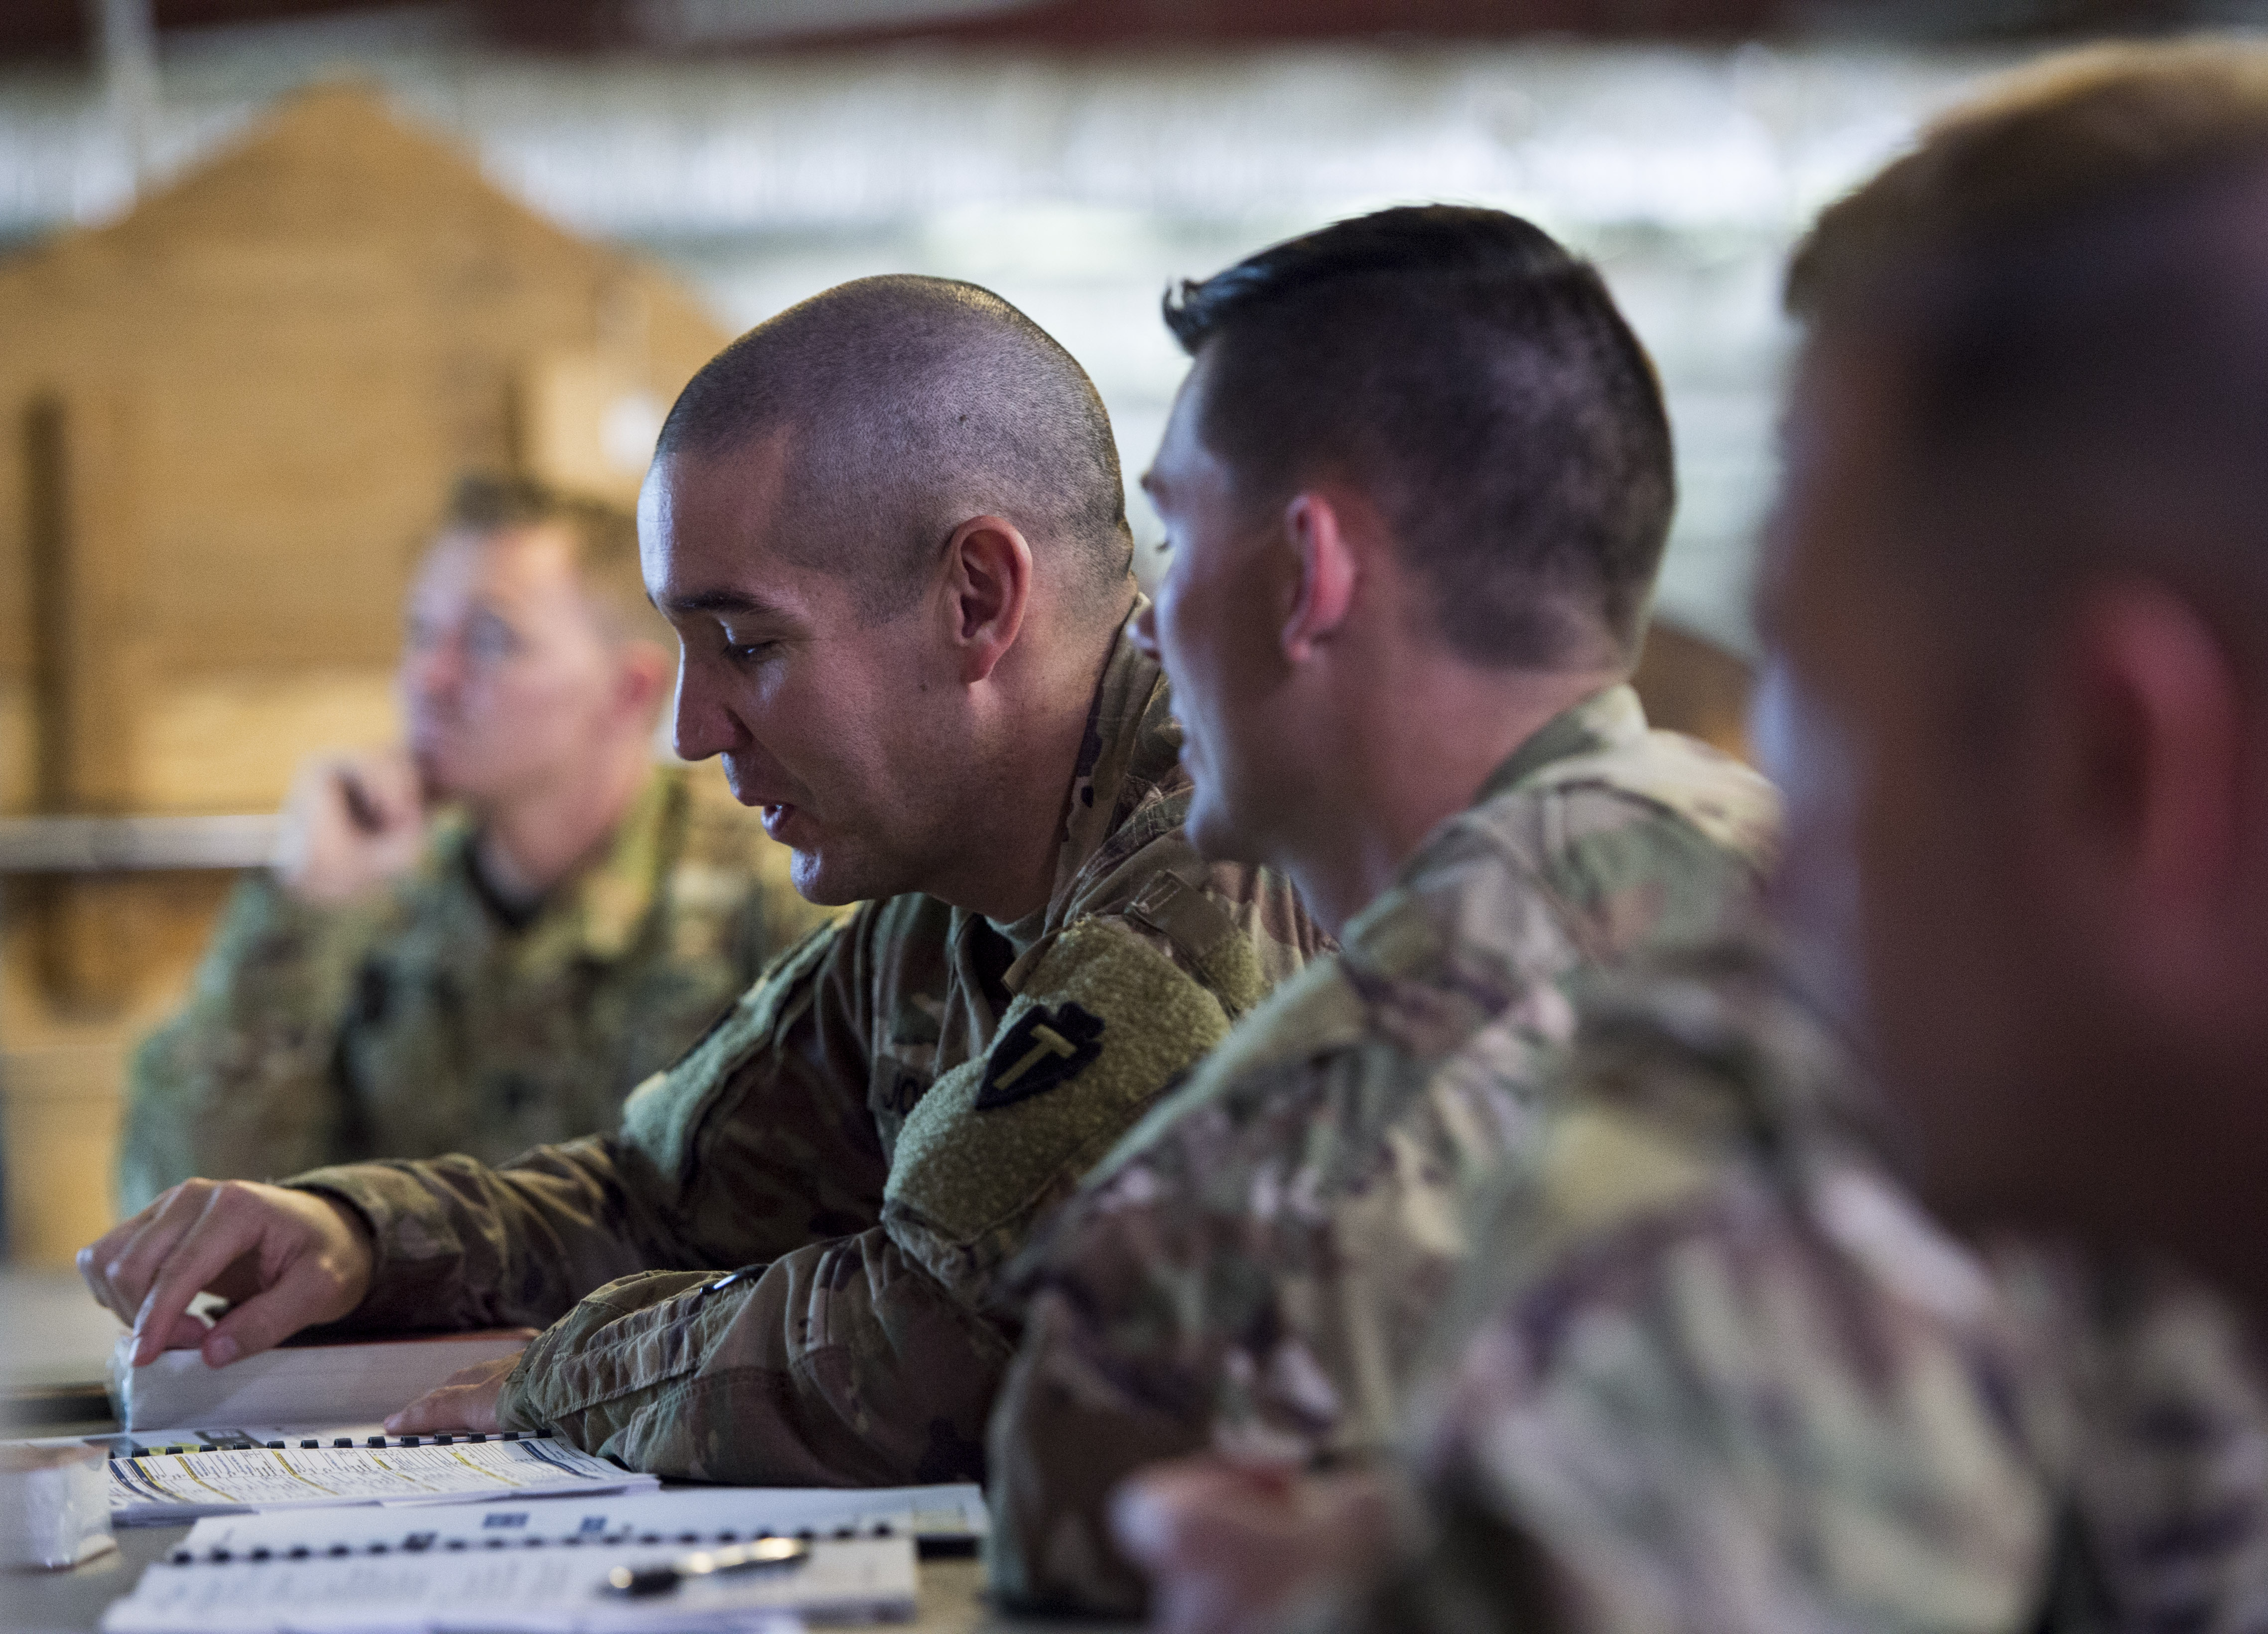 U.S. service members assigned to Combined Joint Task Force - Horn of Africa discuss a plan for military involvement in a simulated disaster relief operation during a U.S. Agency for International Development's Joint Humanitarian Operations Course at Camp Lemonnier, Djibouti, March 9, 2018. Members attended the second two-day course, which highlighted international disaster response, best practices, and the U.S. military's role when supporting humanitarian assistance and disaster relief operations. (U.S. Air Force photo by Staff Sgt. Timothy Moore)